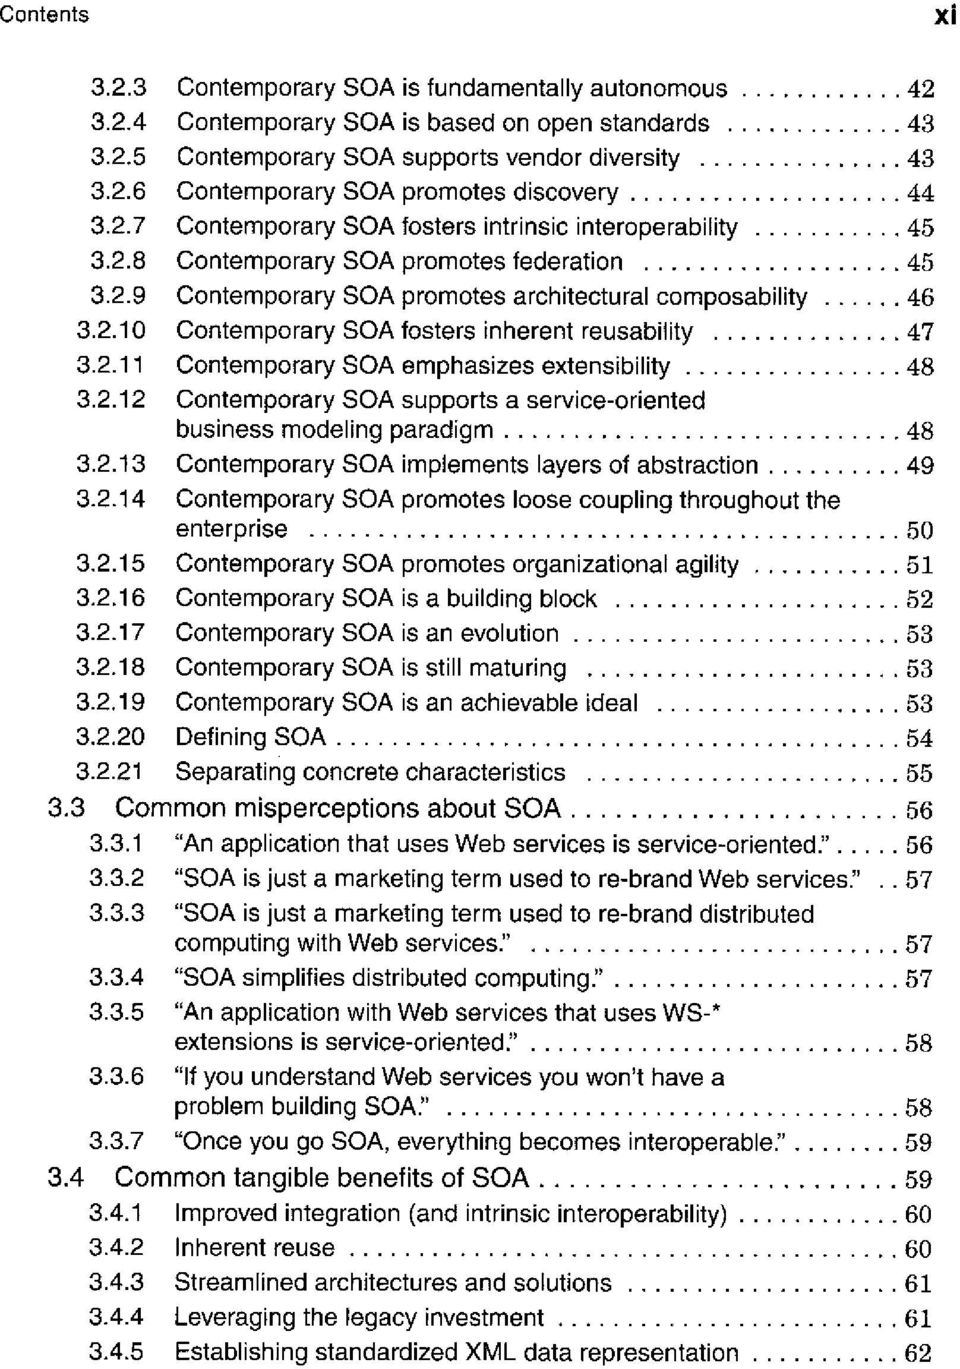 2.11 Contemporary SOA emphasizes extensibility 48 3.2.12 Contemporary SOA supports a service-oriented business modeling paradigm 48 3.2.13 Contemporary SOA implements layers of abstraction 49 3.2.14 Contemporary SOA promotes loose coupling throughout the enterprise 50 3.